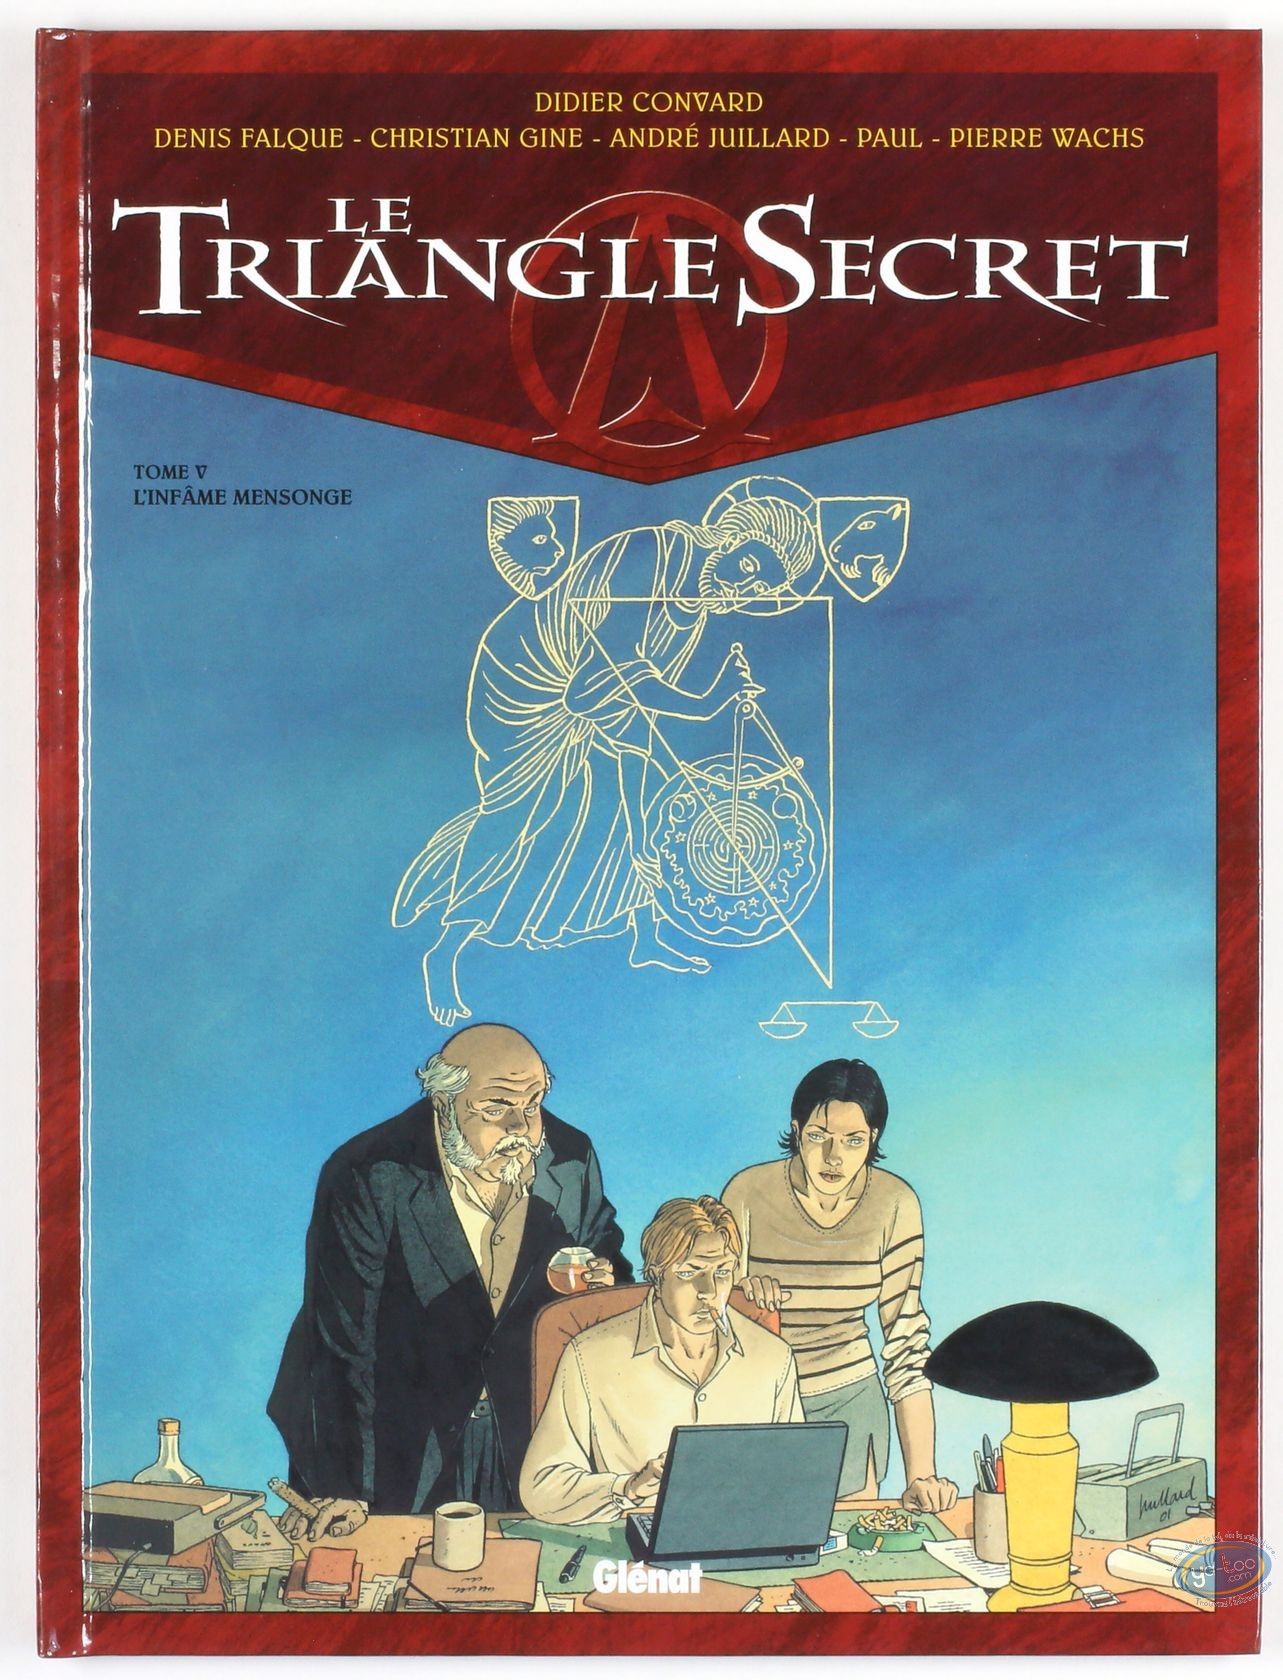 Listed European Comic Books, Triangle Secret (Le) : L'Infâme mensonge